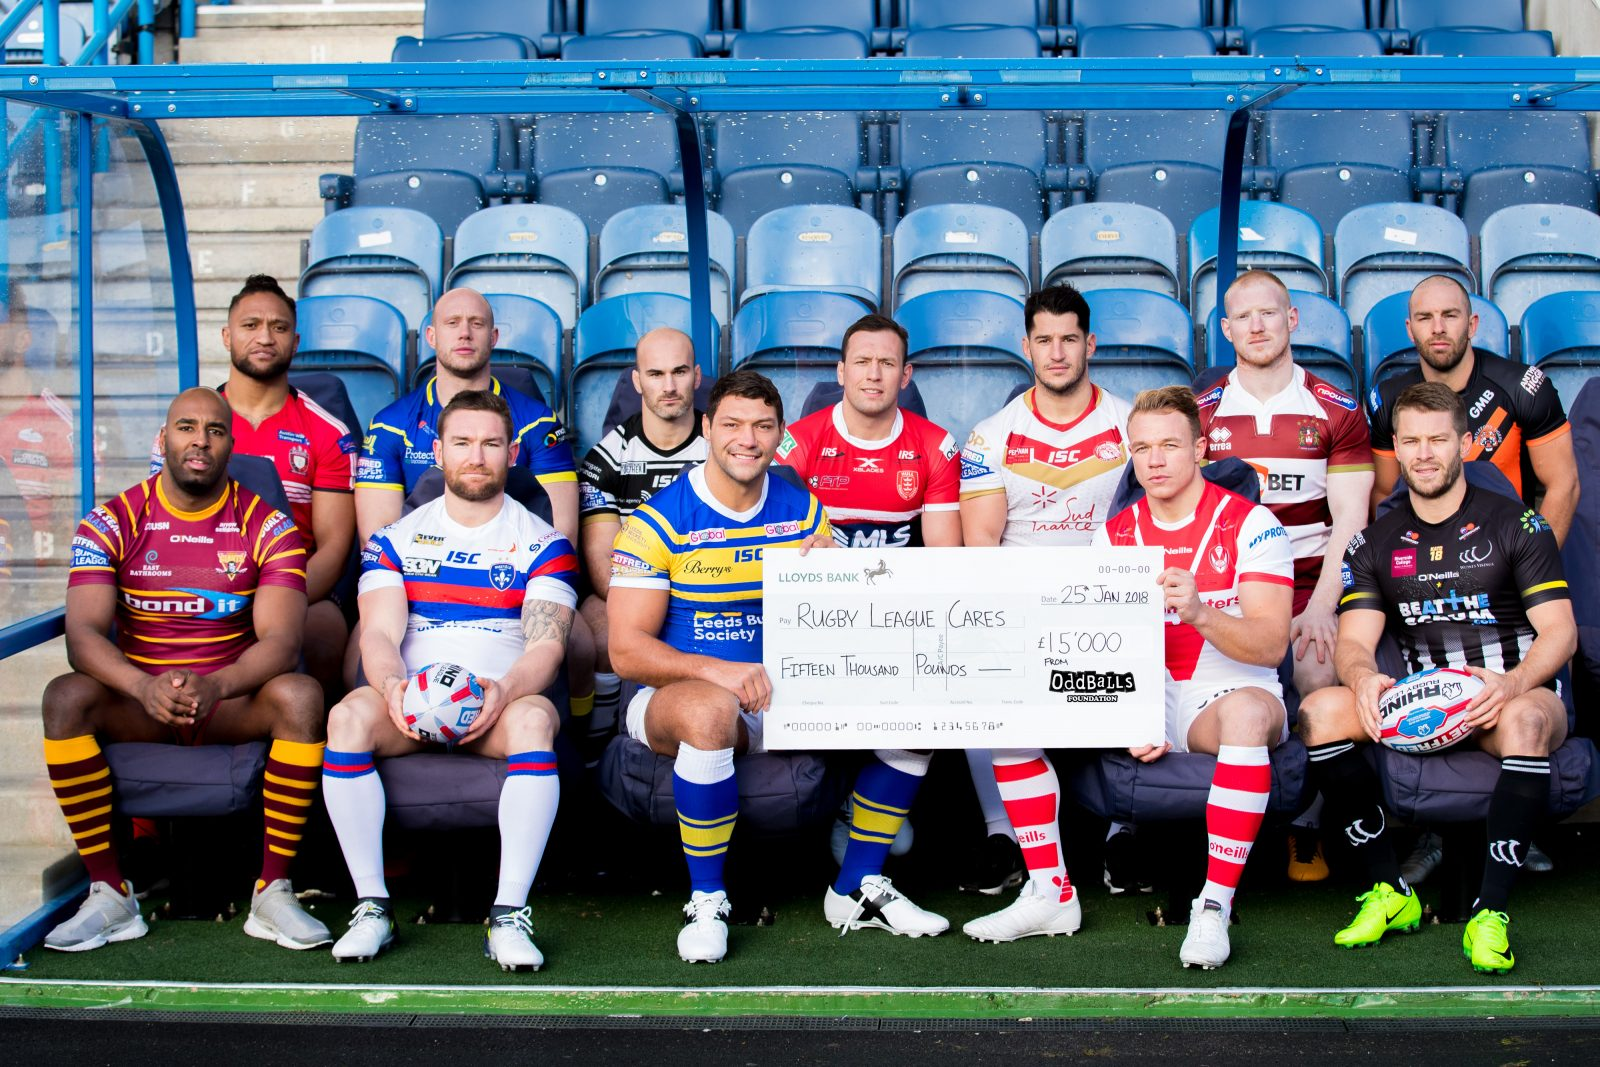 Oddballs double their donation to support RL Cares